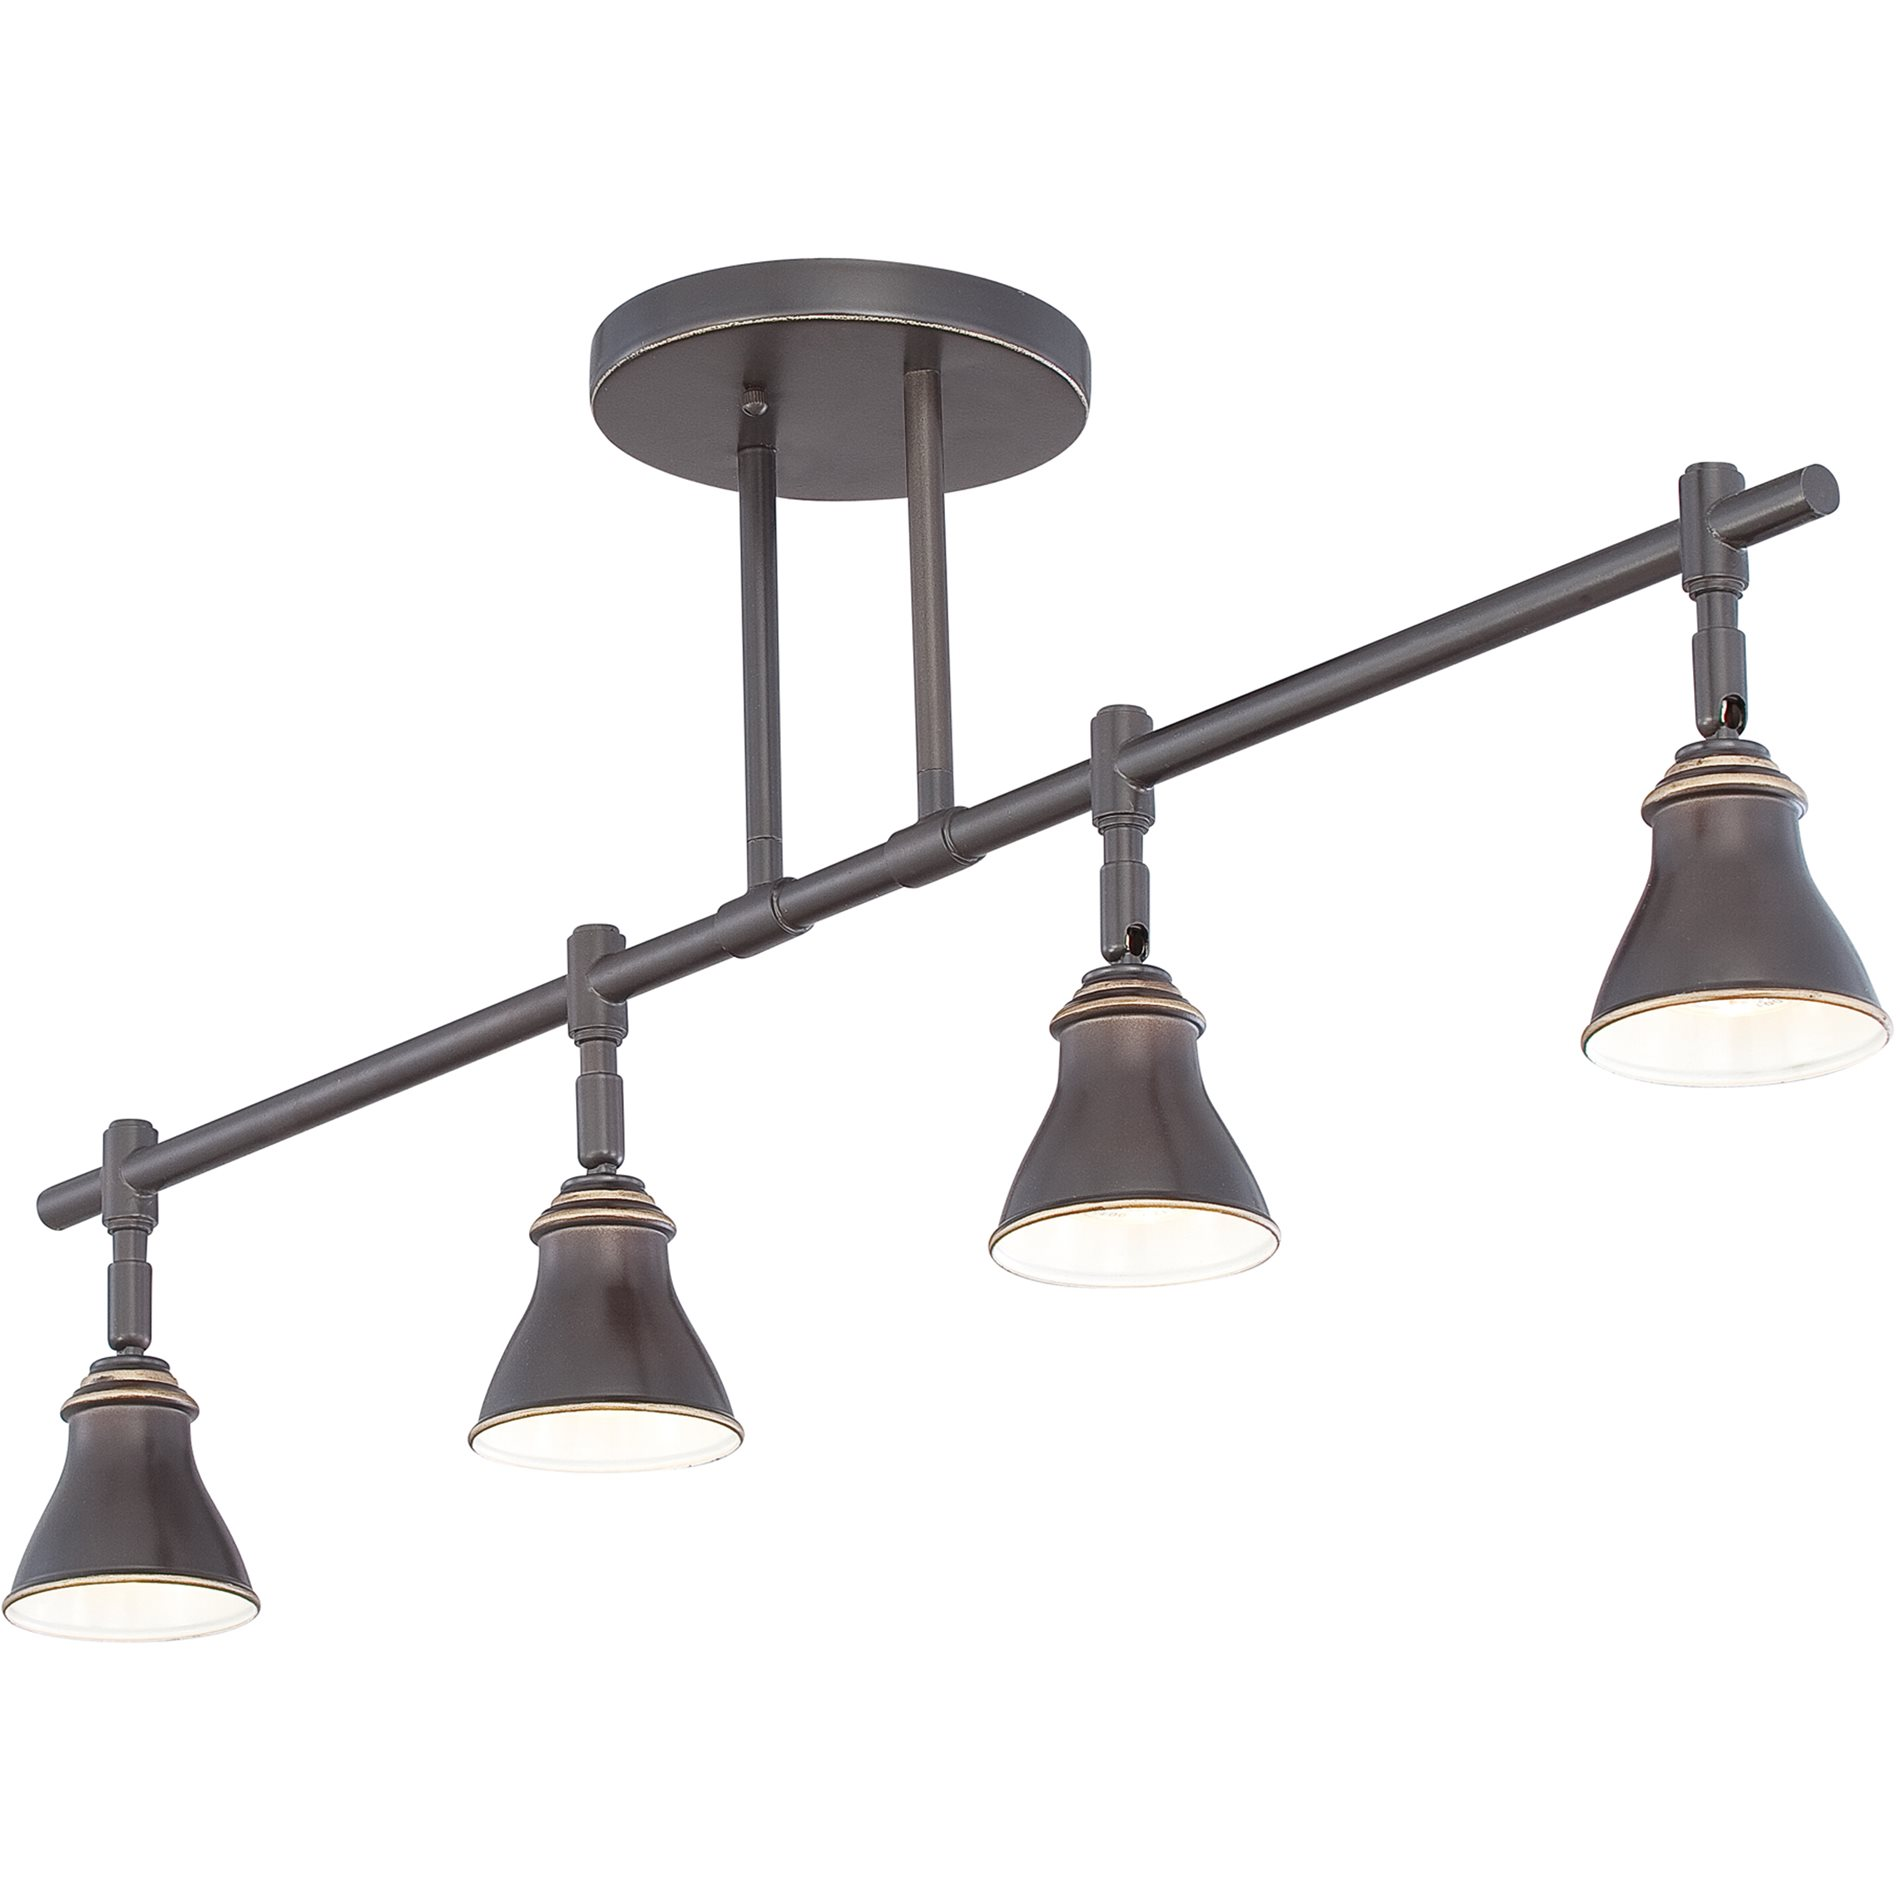 Designer Hanging Light Fittings Quoizel Qtr10054pn Contemporary Ceiling Track Light Qz